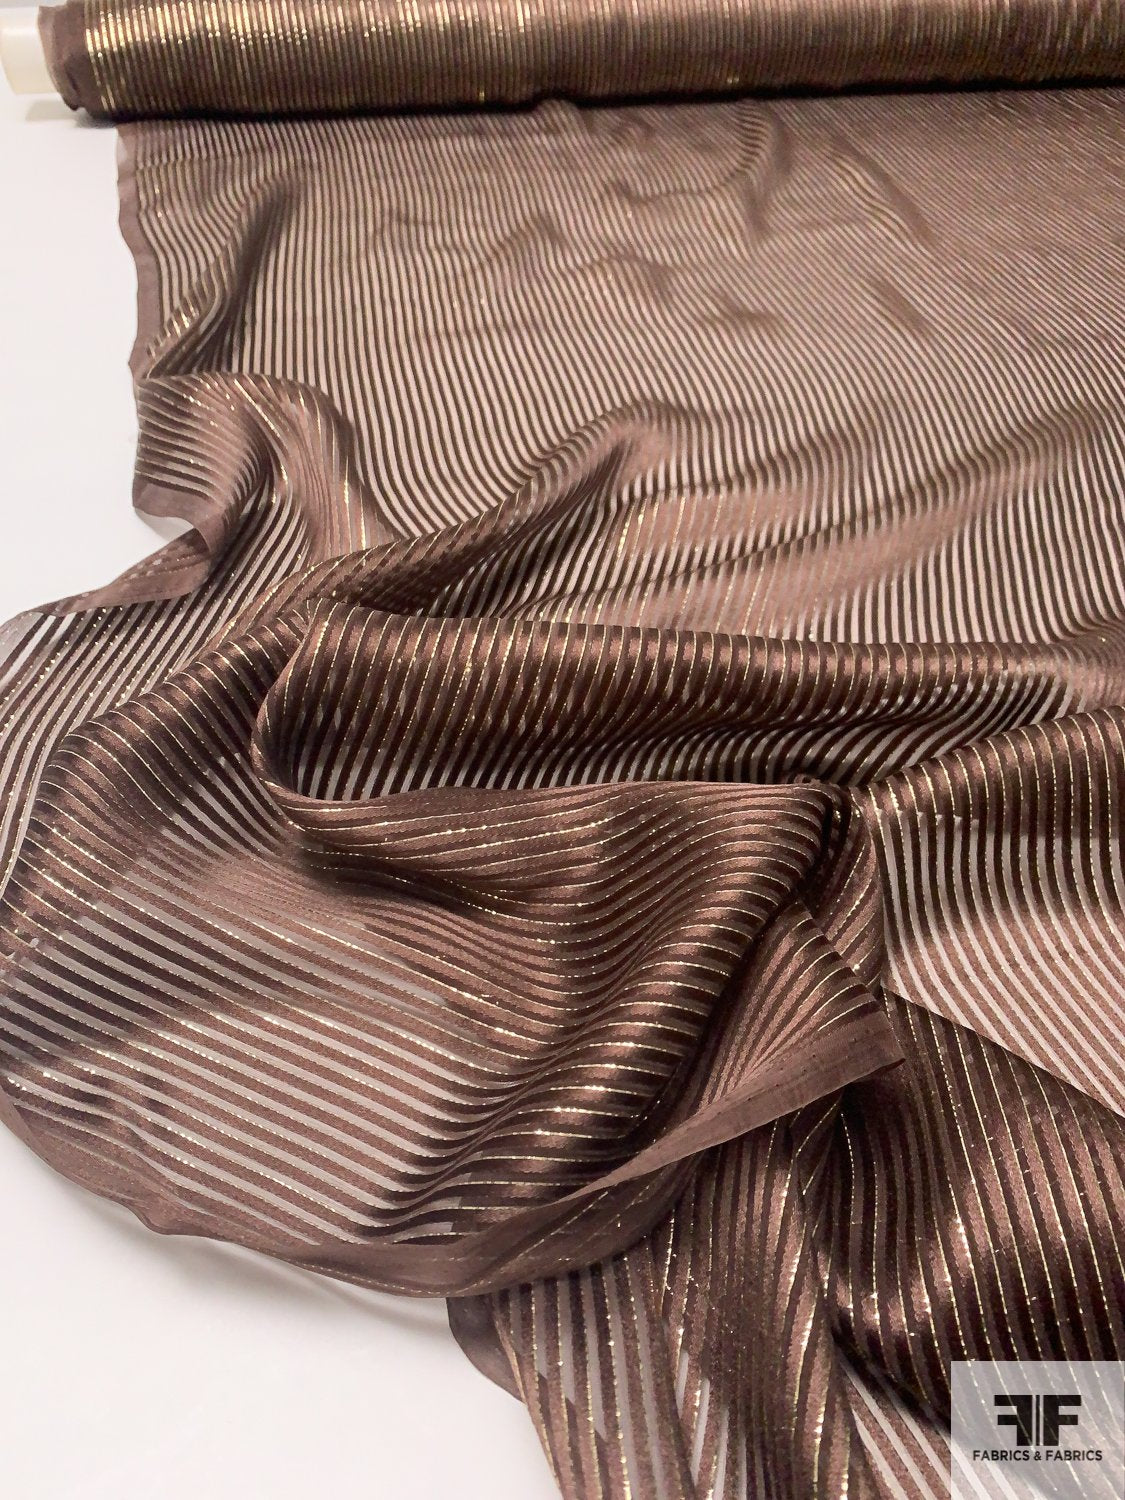 Made in France Thin Satin Striped Silk Chiffon with Gold Lurex - Brown / Gold